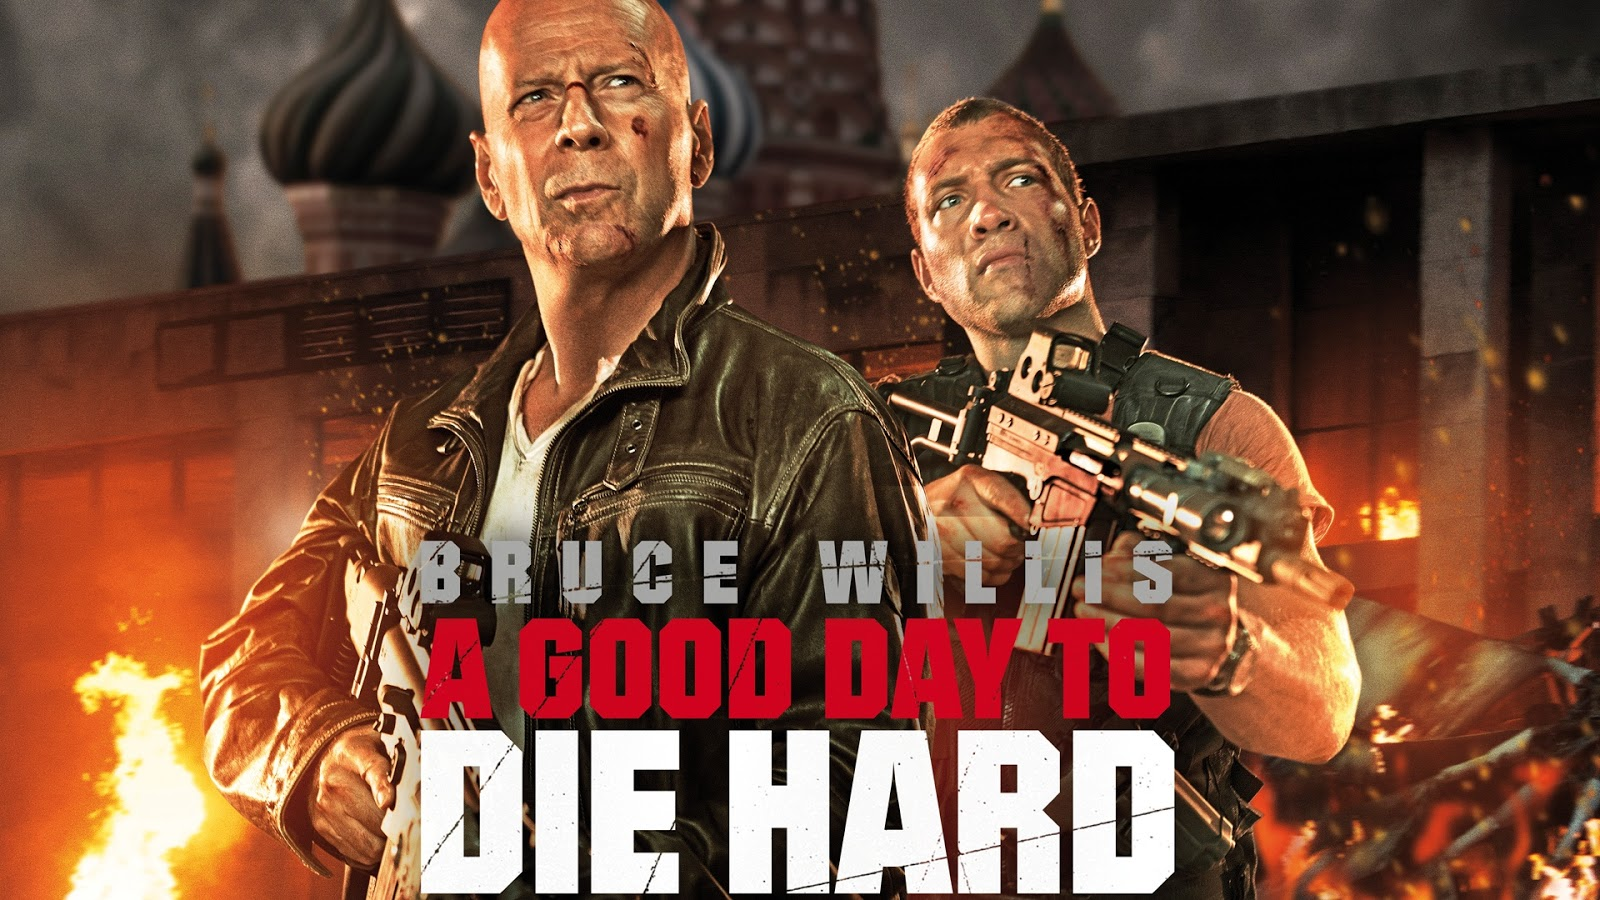 Good Way to Die Hard Movie